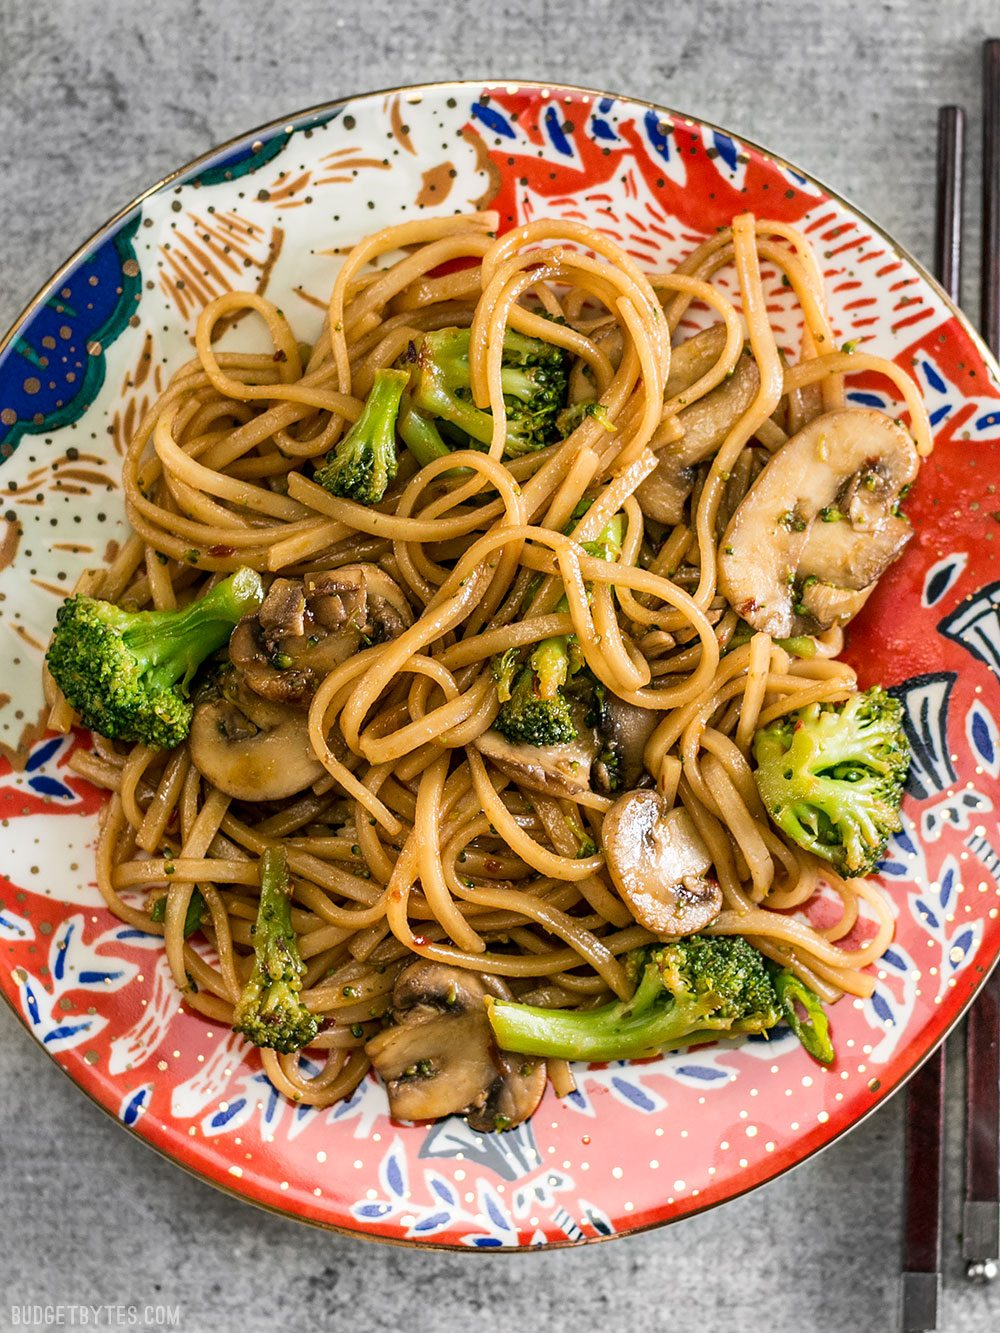 With just a few ingredients you can make these easy and delicious Mushroom Broccoli Stir Fry Noodles for a fast weeknight dinner. BudgetBytes.com